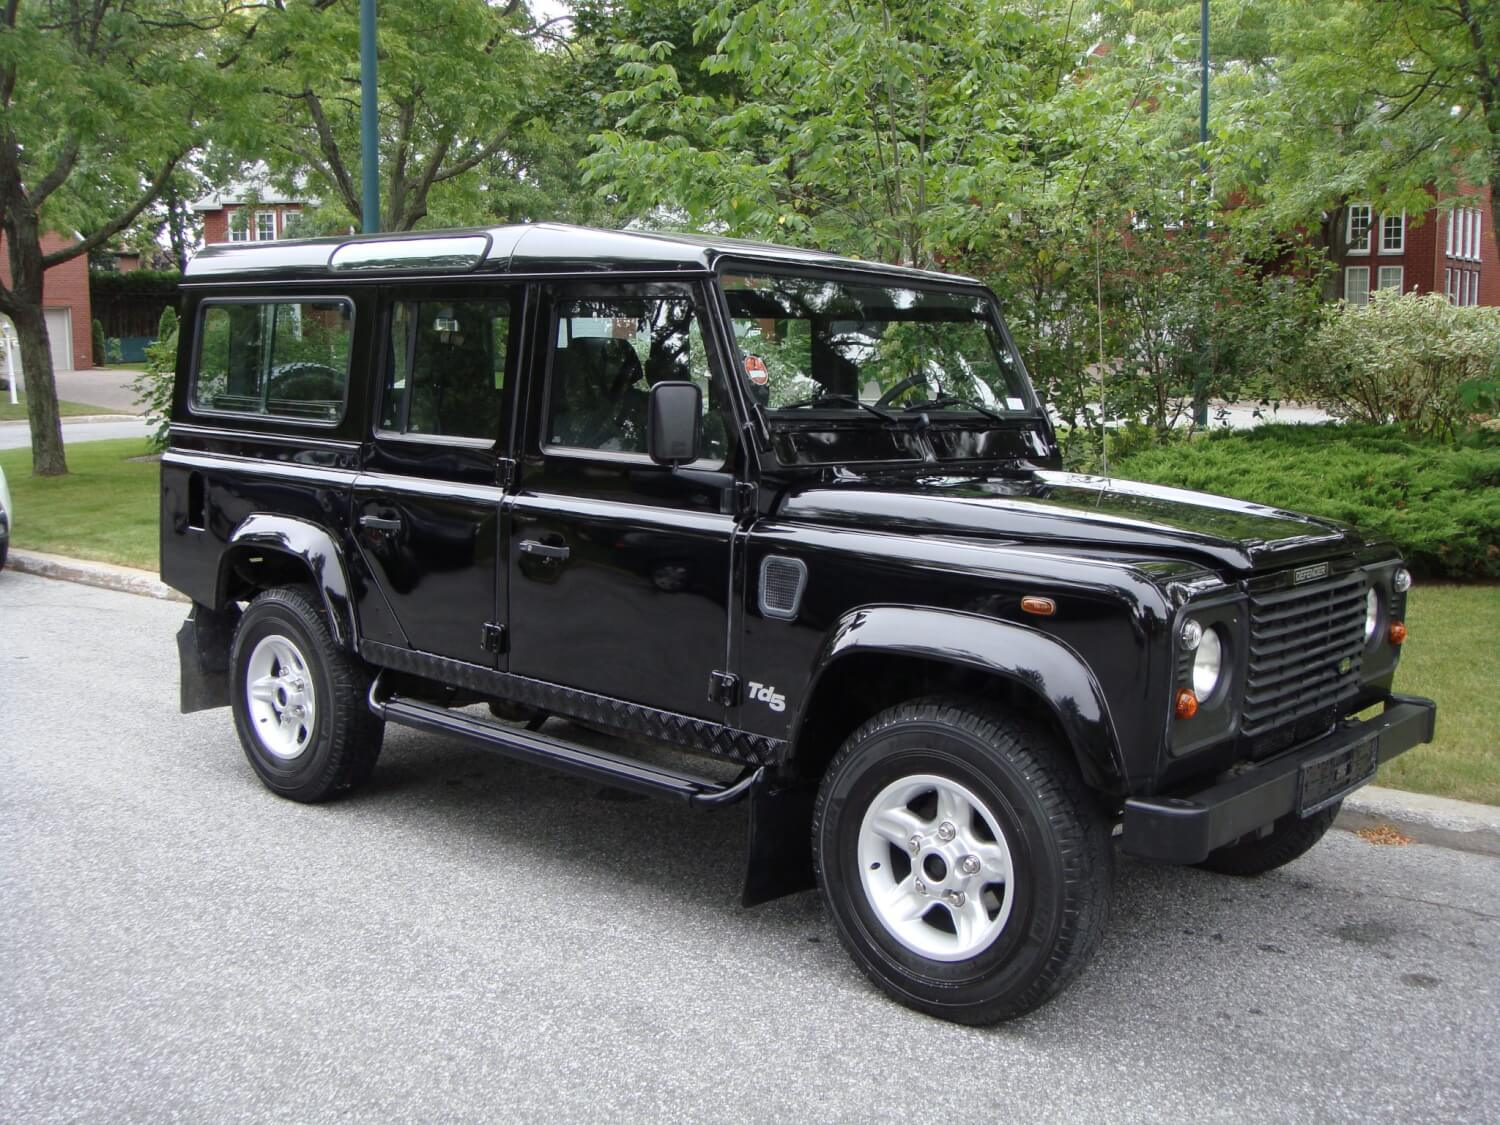 2426 land rover defender 110 td5 exotic suv. Black Bedroom Furniture Sets. Home Design Ideas